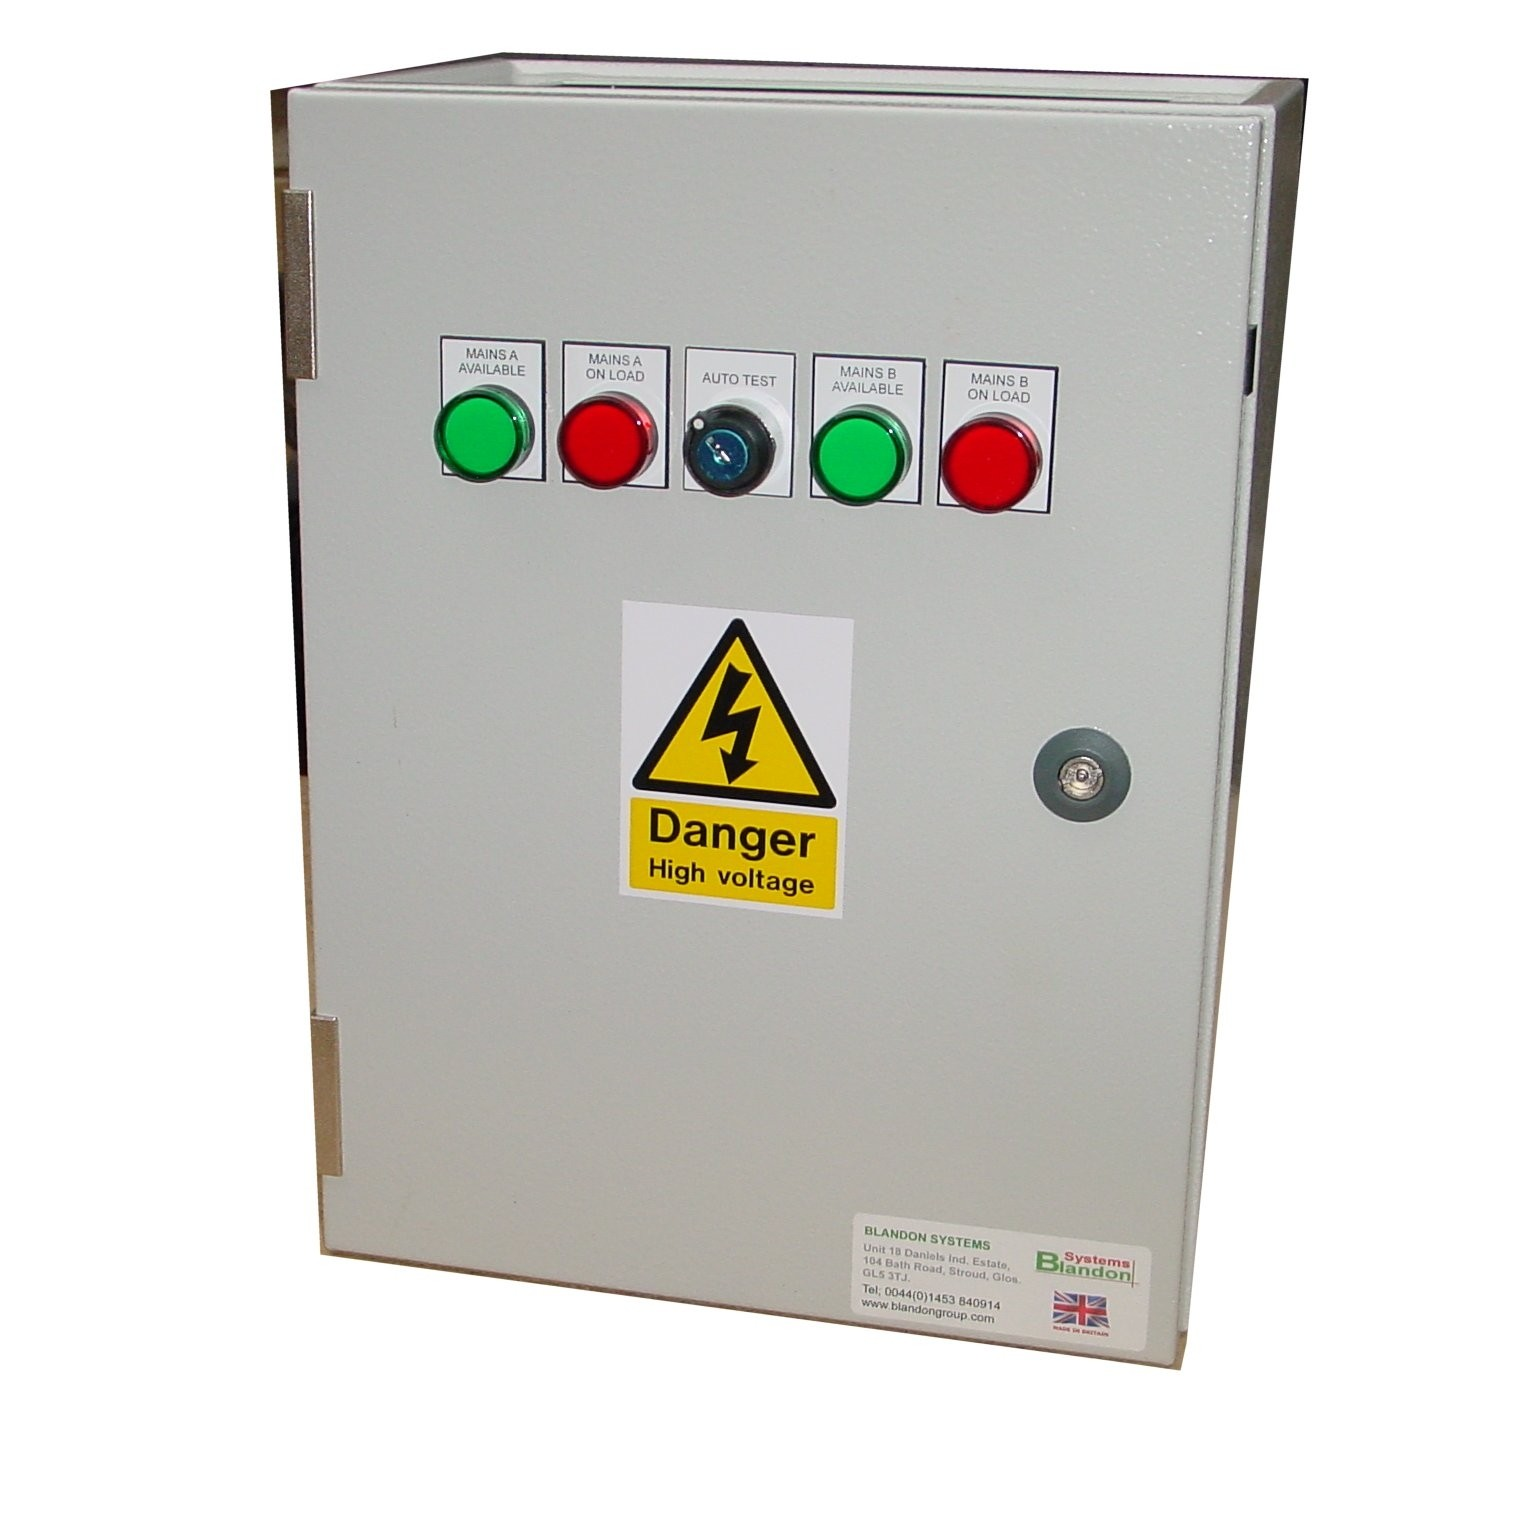 60A ATS 3 Phase 400V, UVR Controlled, ABB Contactors